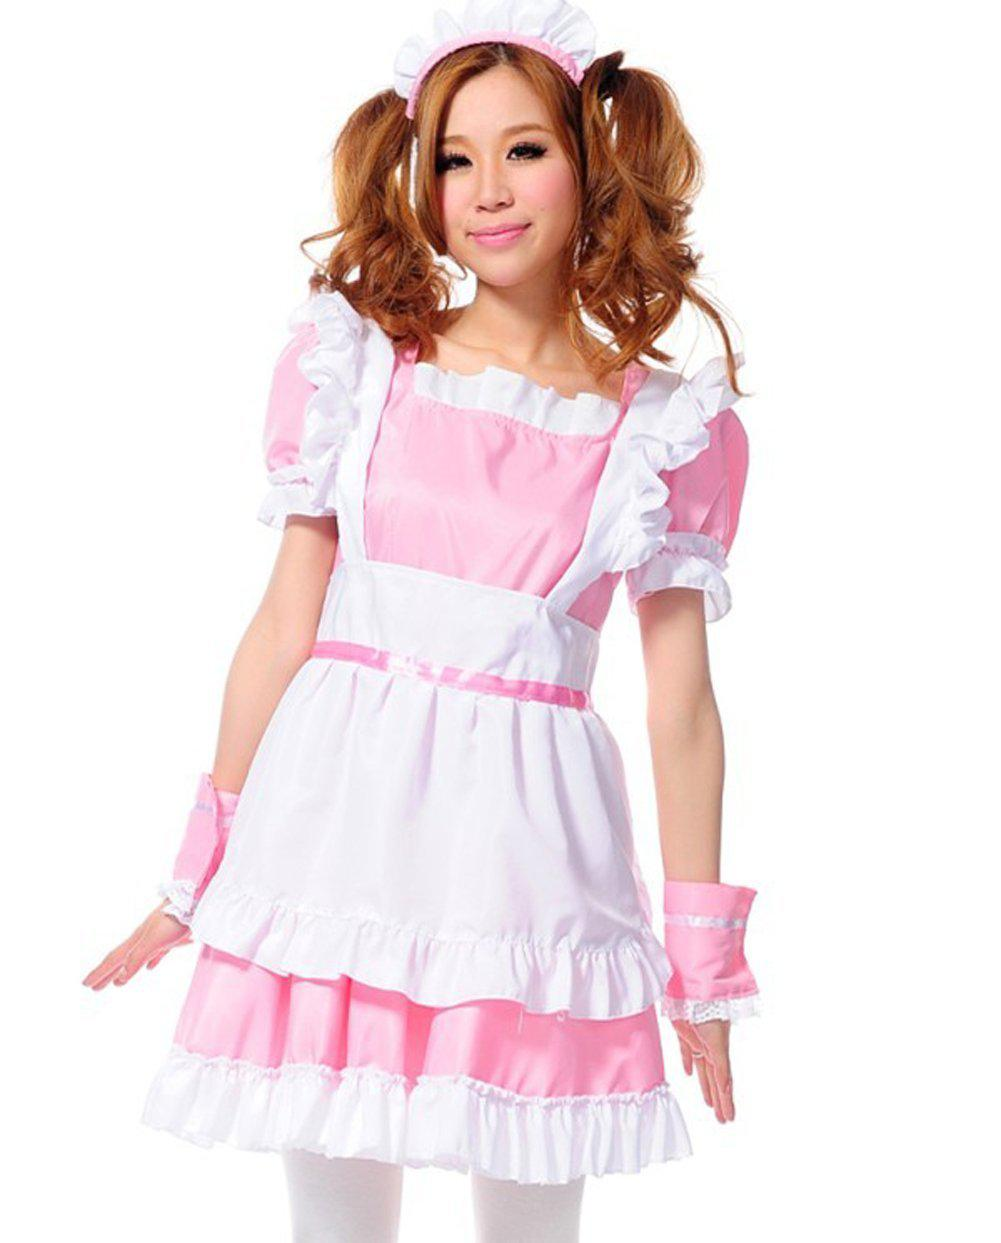 Treasure Box Womenu0027s Lolita French Maid Costume Pink Maid Dress Halloween Costumes For Groups Of 3 Halloween Costumes Group From Stonerain $25.13| Dhgate.  sc 1 st  DHgate.com & Treasure Box Womenu0027s Lolita French Maid Costume Pink Maid Dress ...